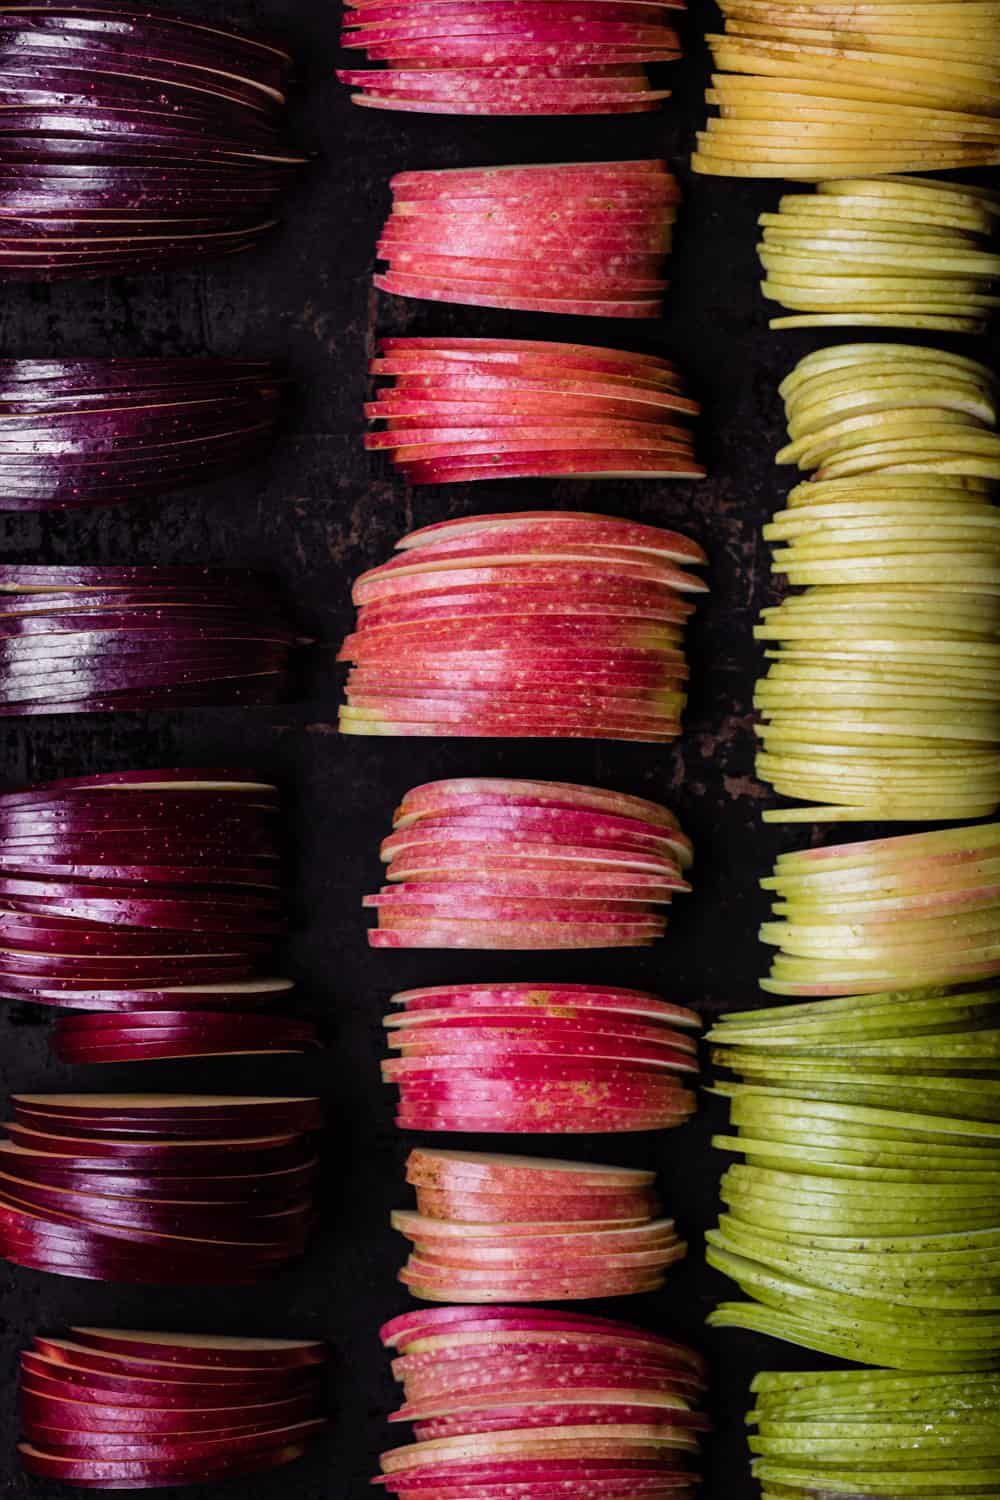 Thinly sliced apples, from purple to green, arranged cut side down, overhead shot.